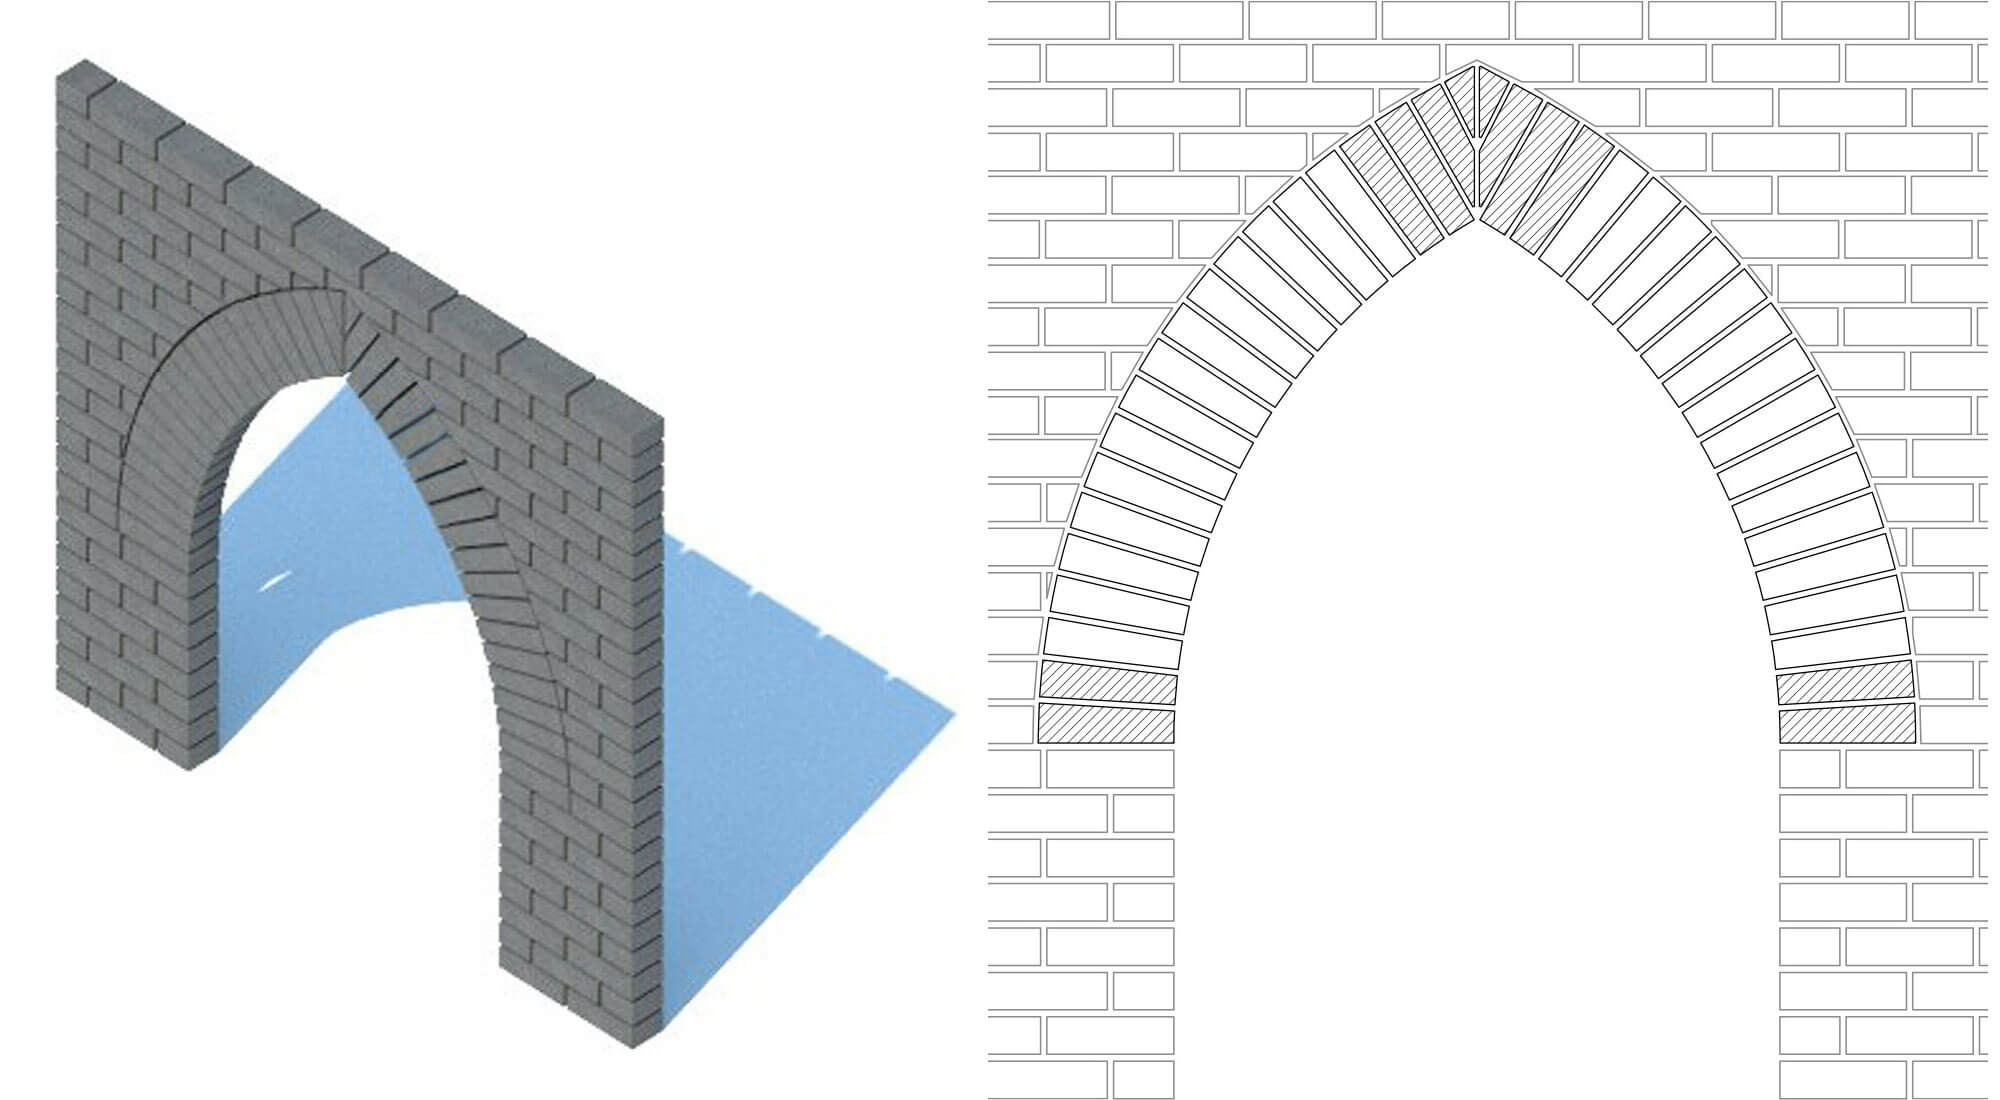 Figure 3.1 Gothic Arch scale 1 20 elevation